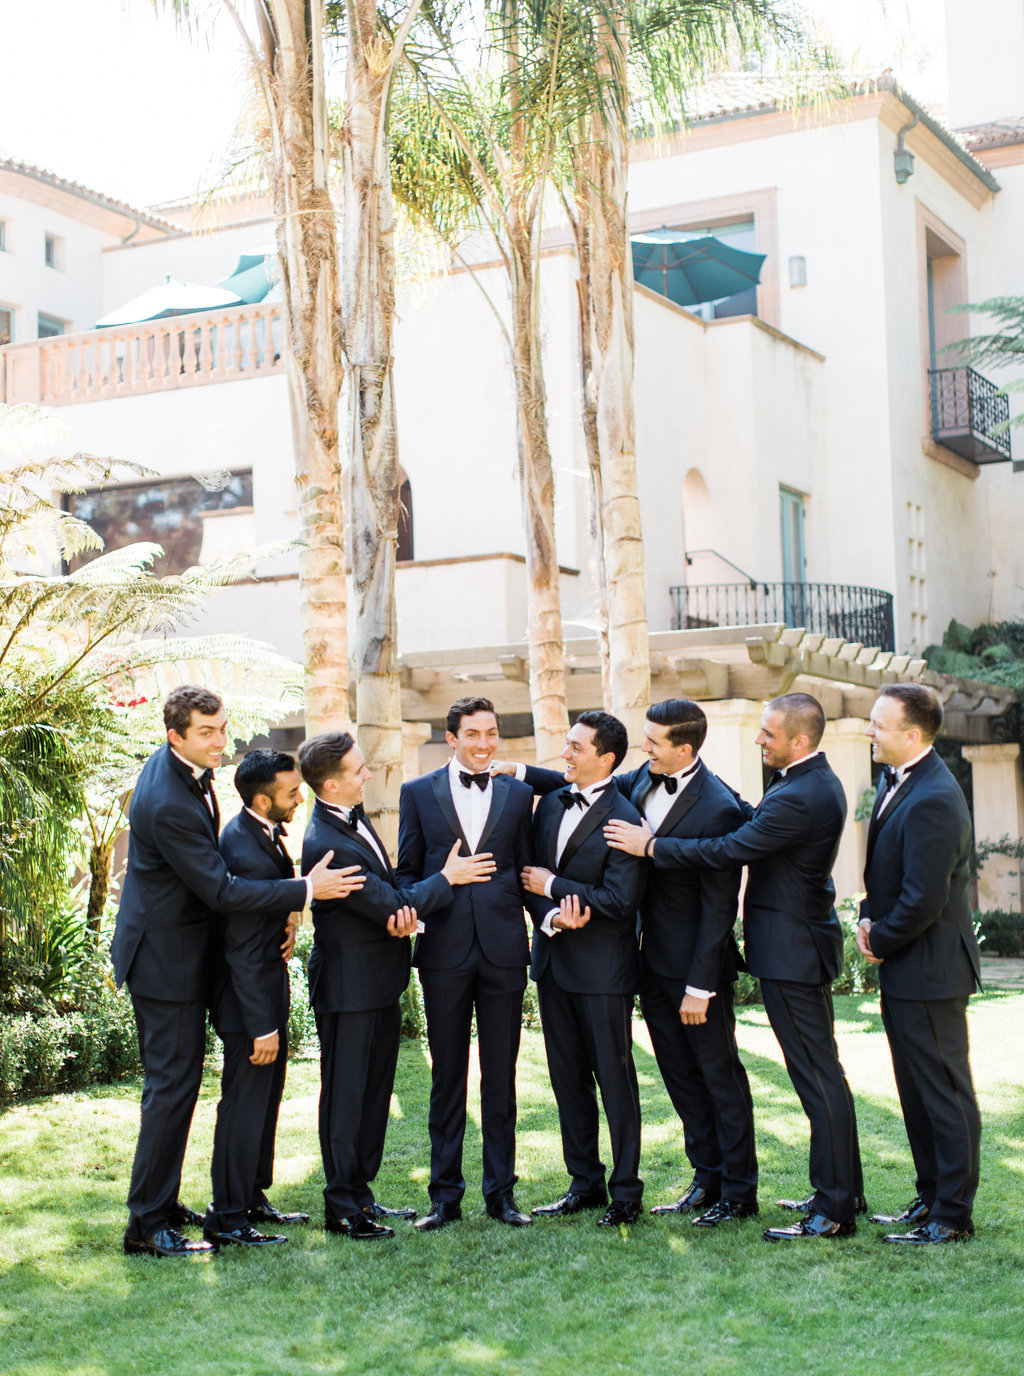 Groom and groomsmen in tuxedos for wedding party photo at Butterfly Lane Estate